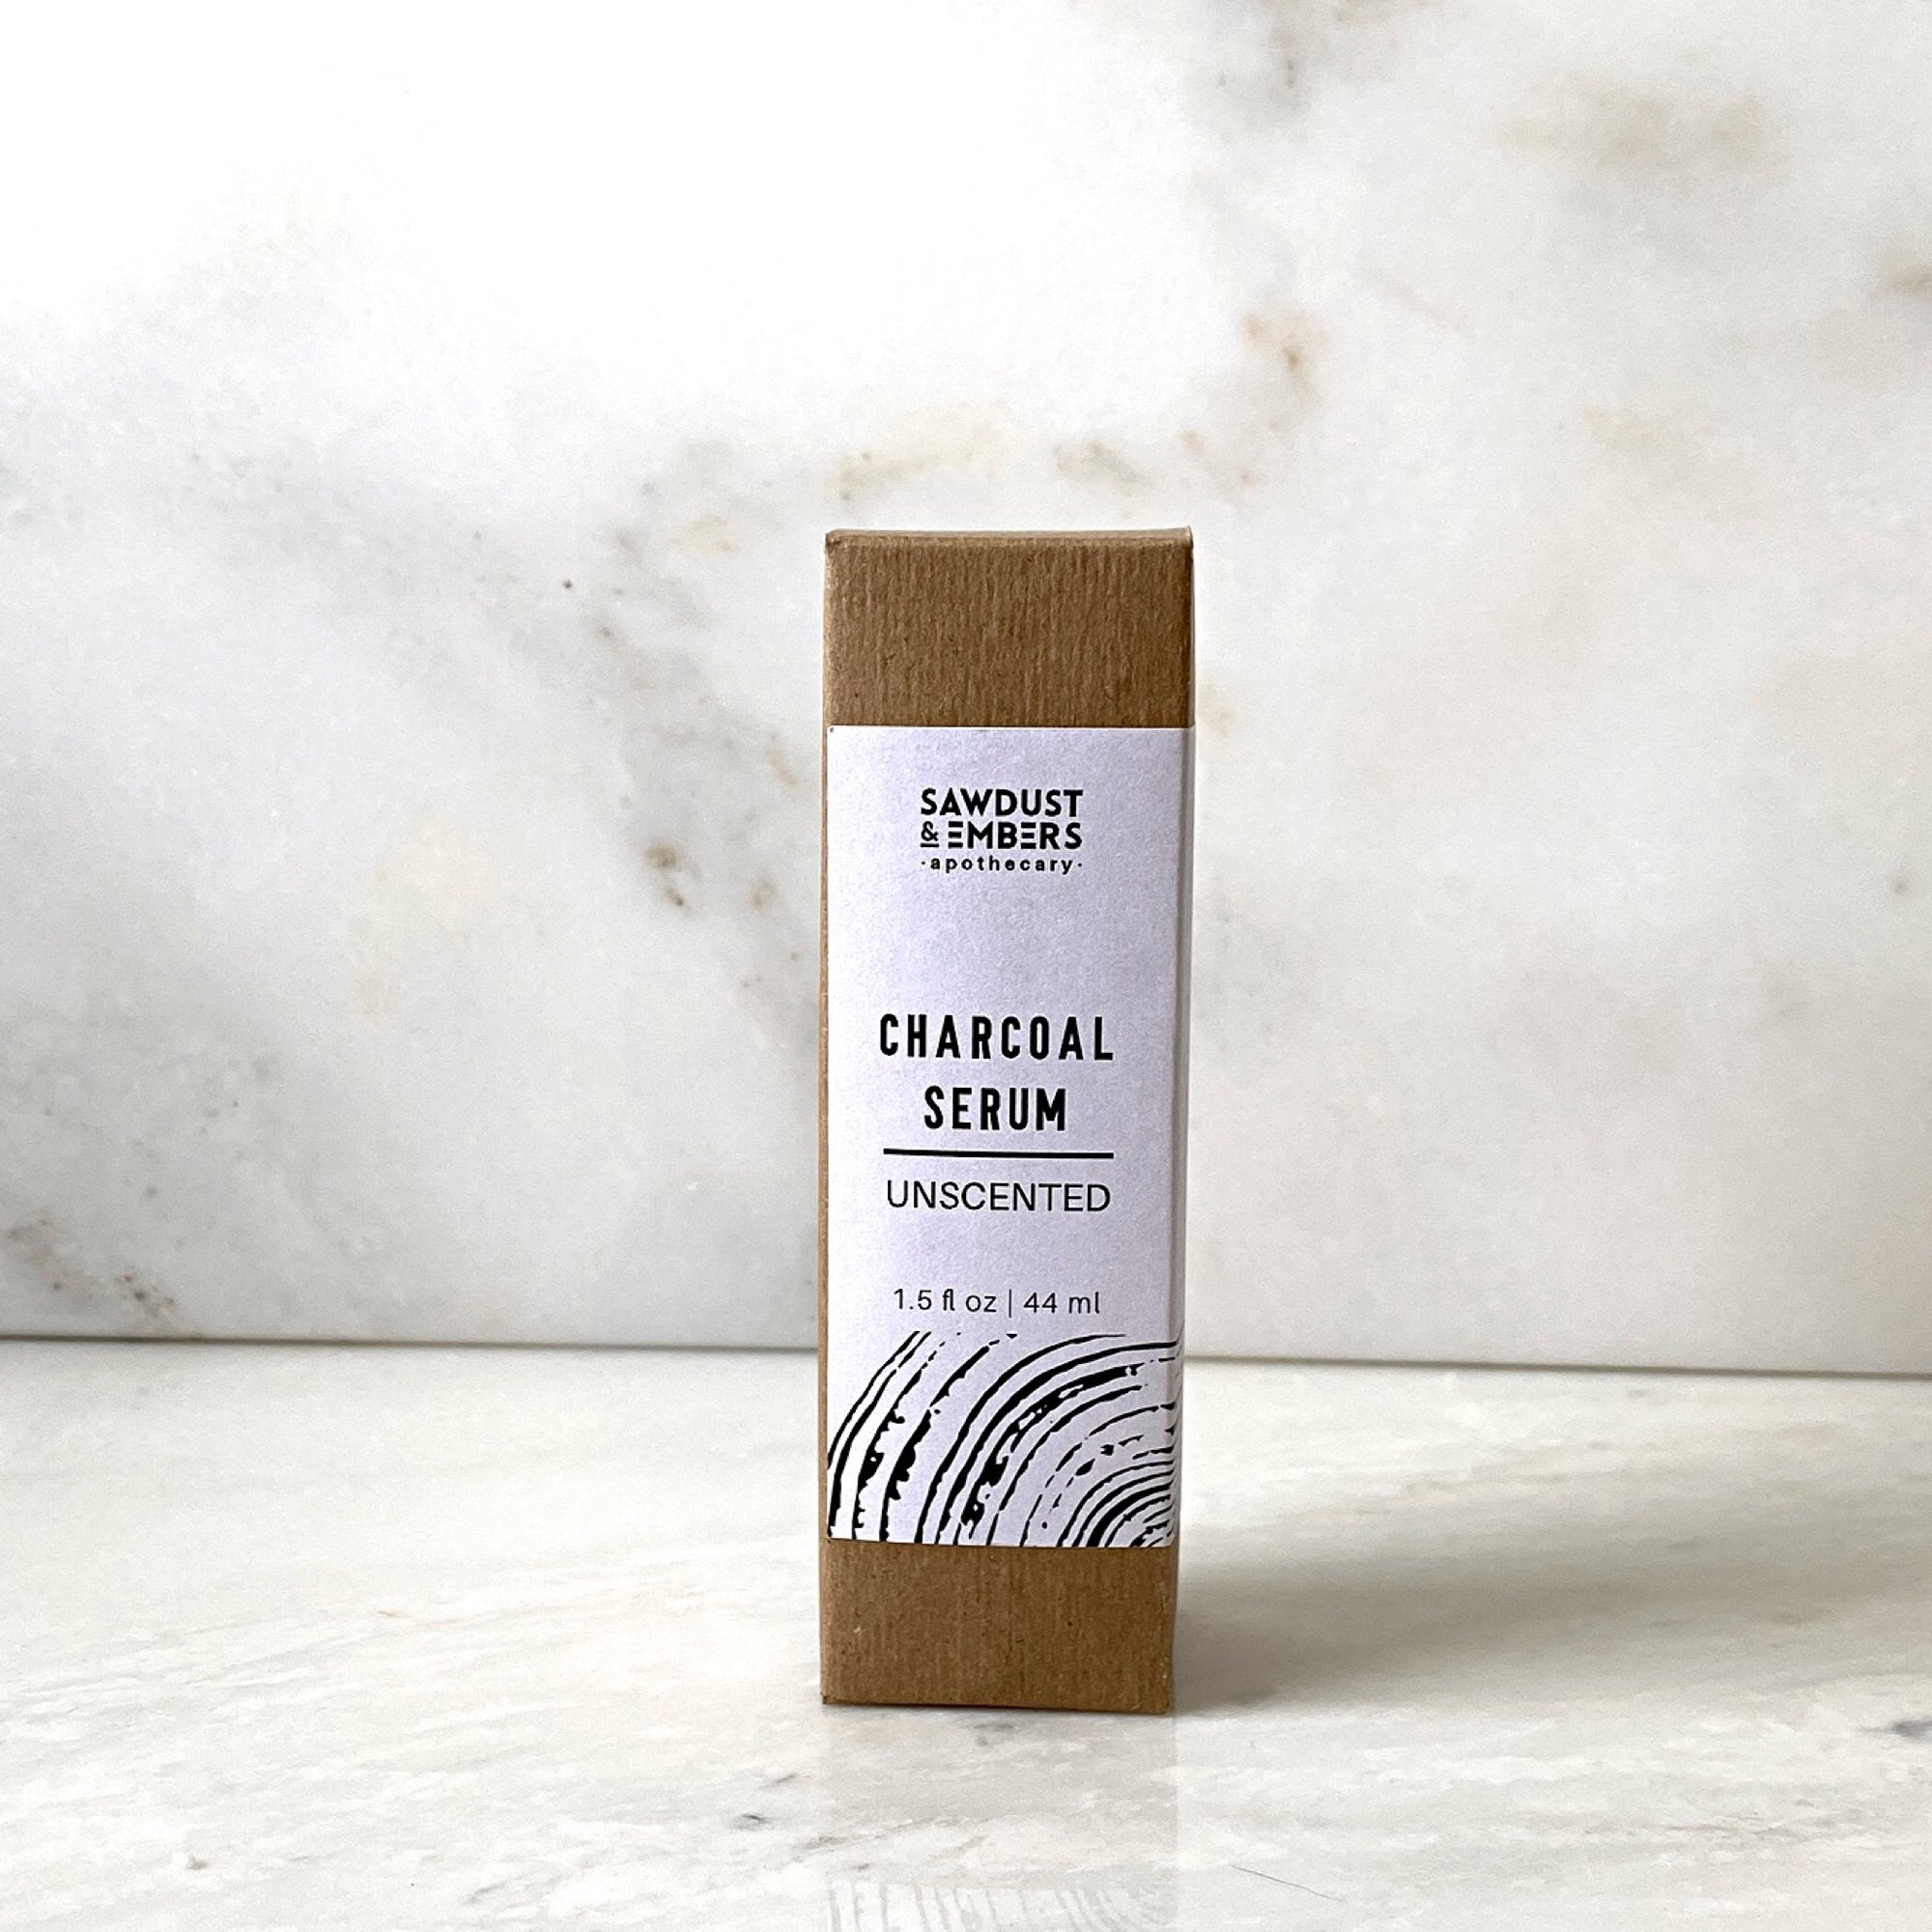 Charcoal Serum - Unscented